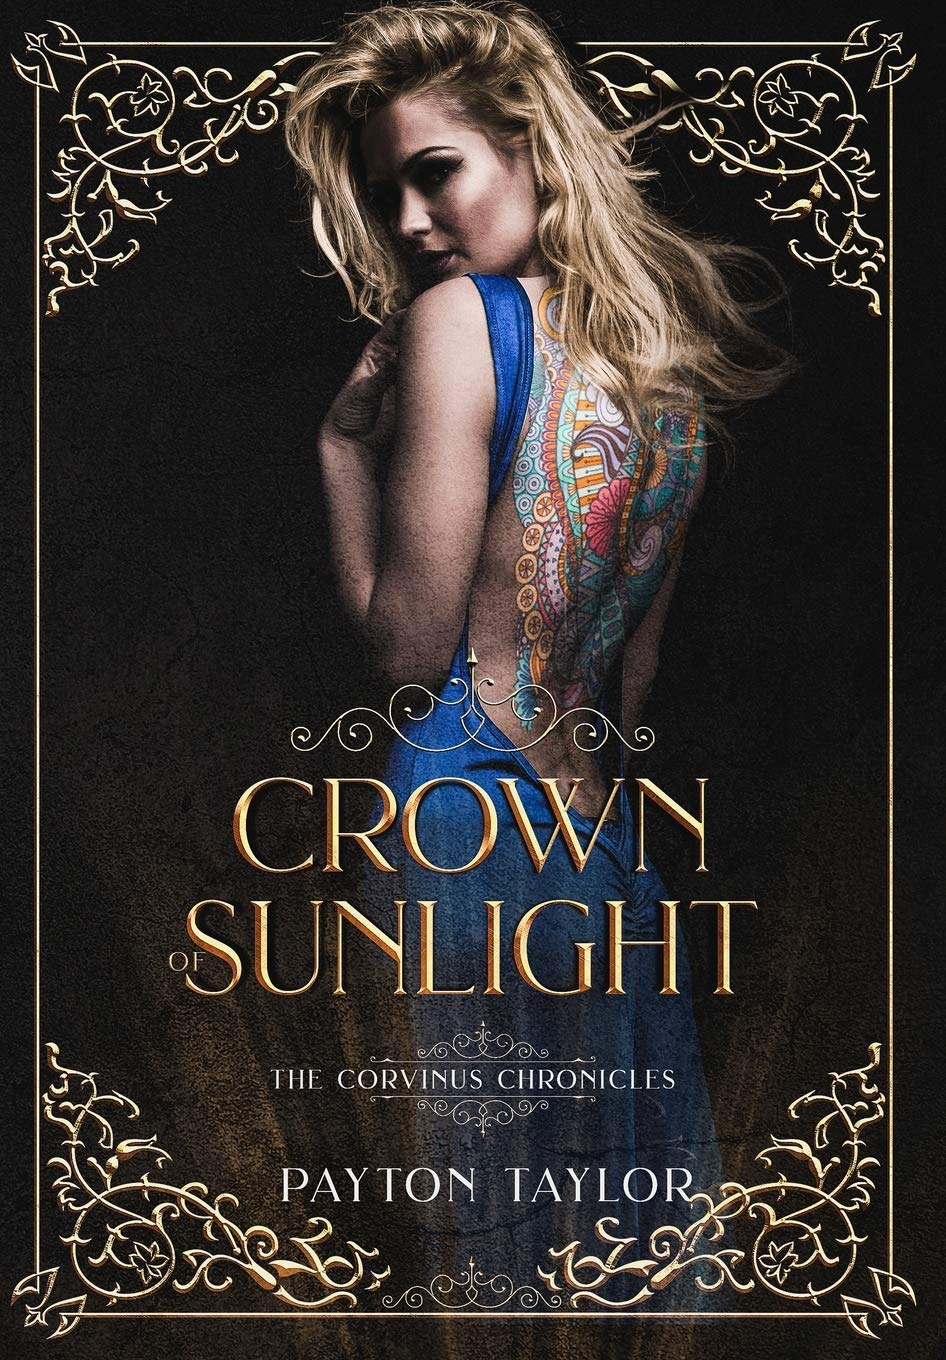 Crown of Sunlight: The Corvinus Chronicles by Payton Taylor